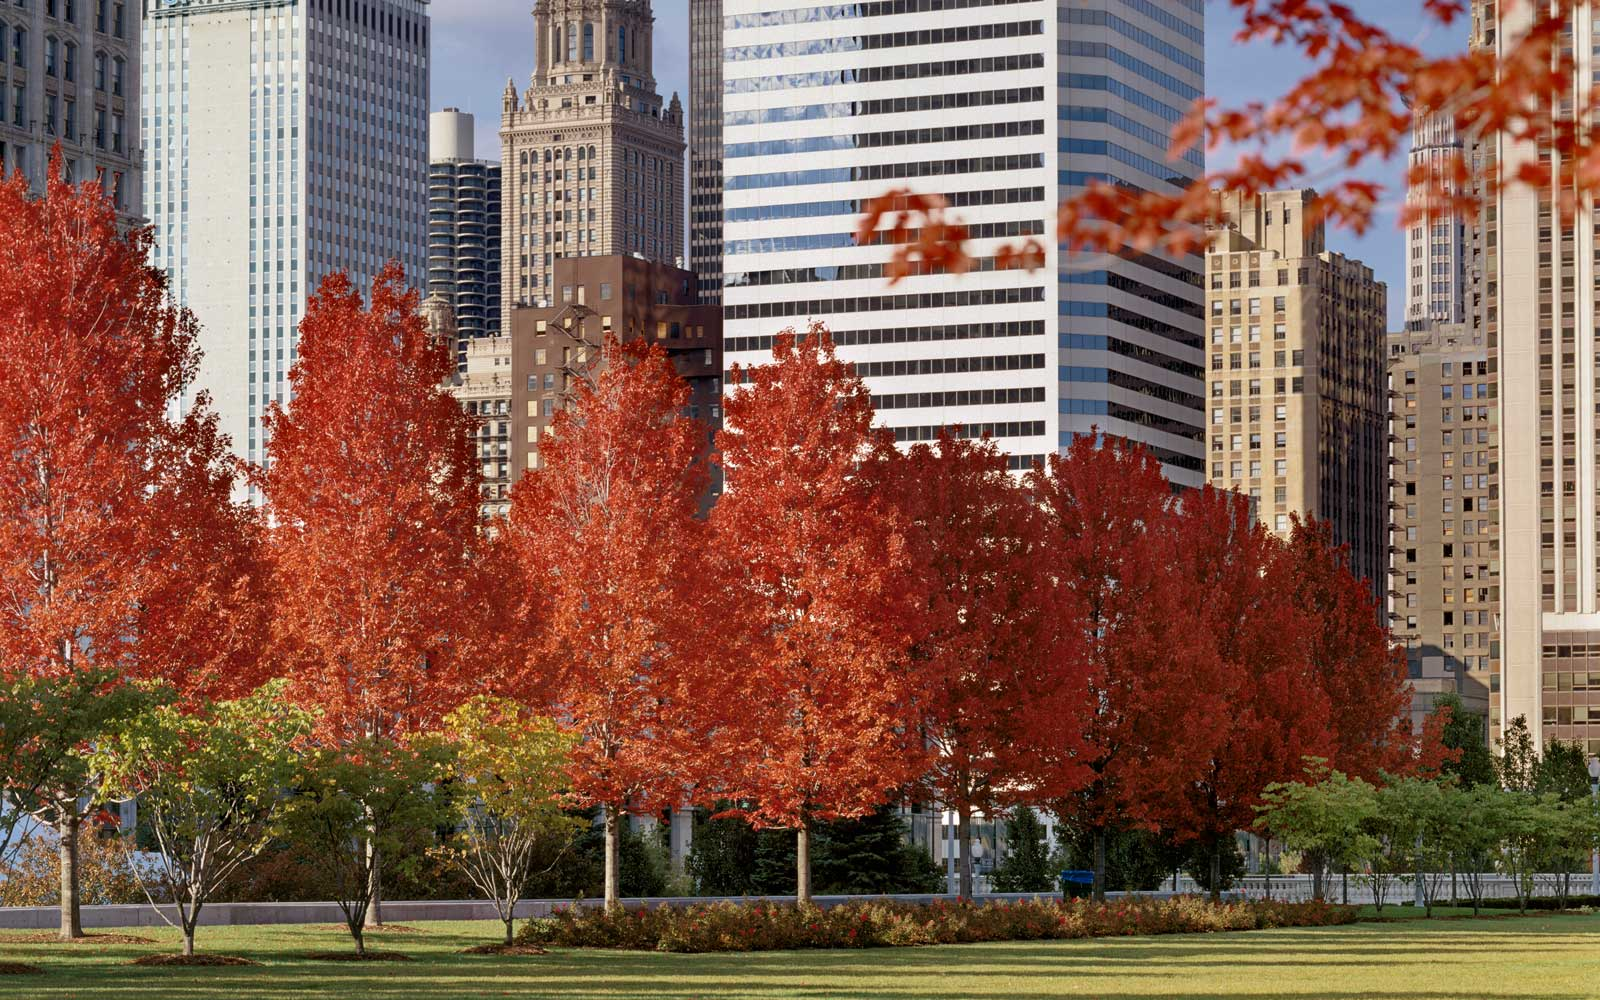 Fall trees in Millennium Park in Chicago